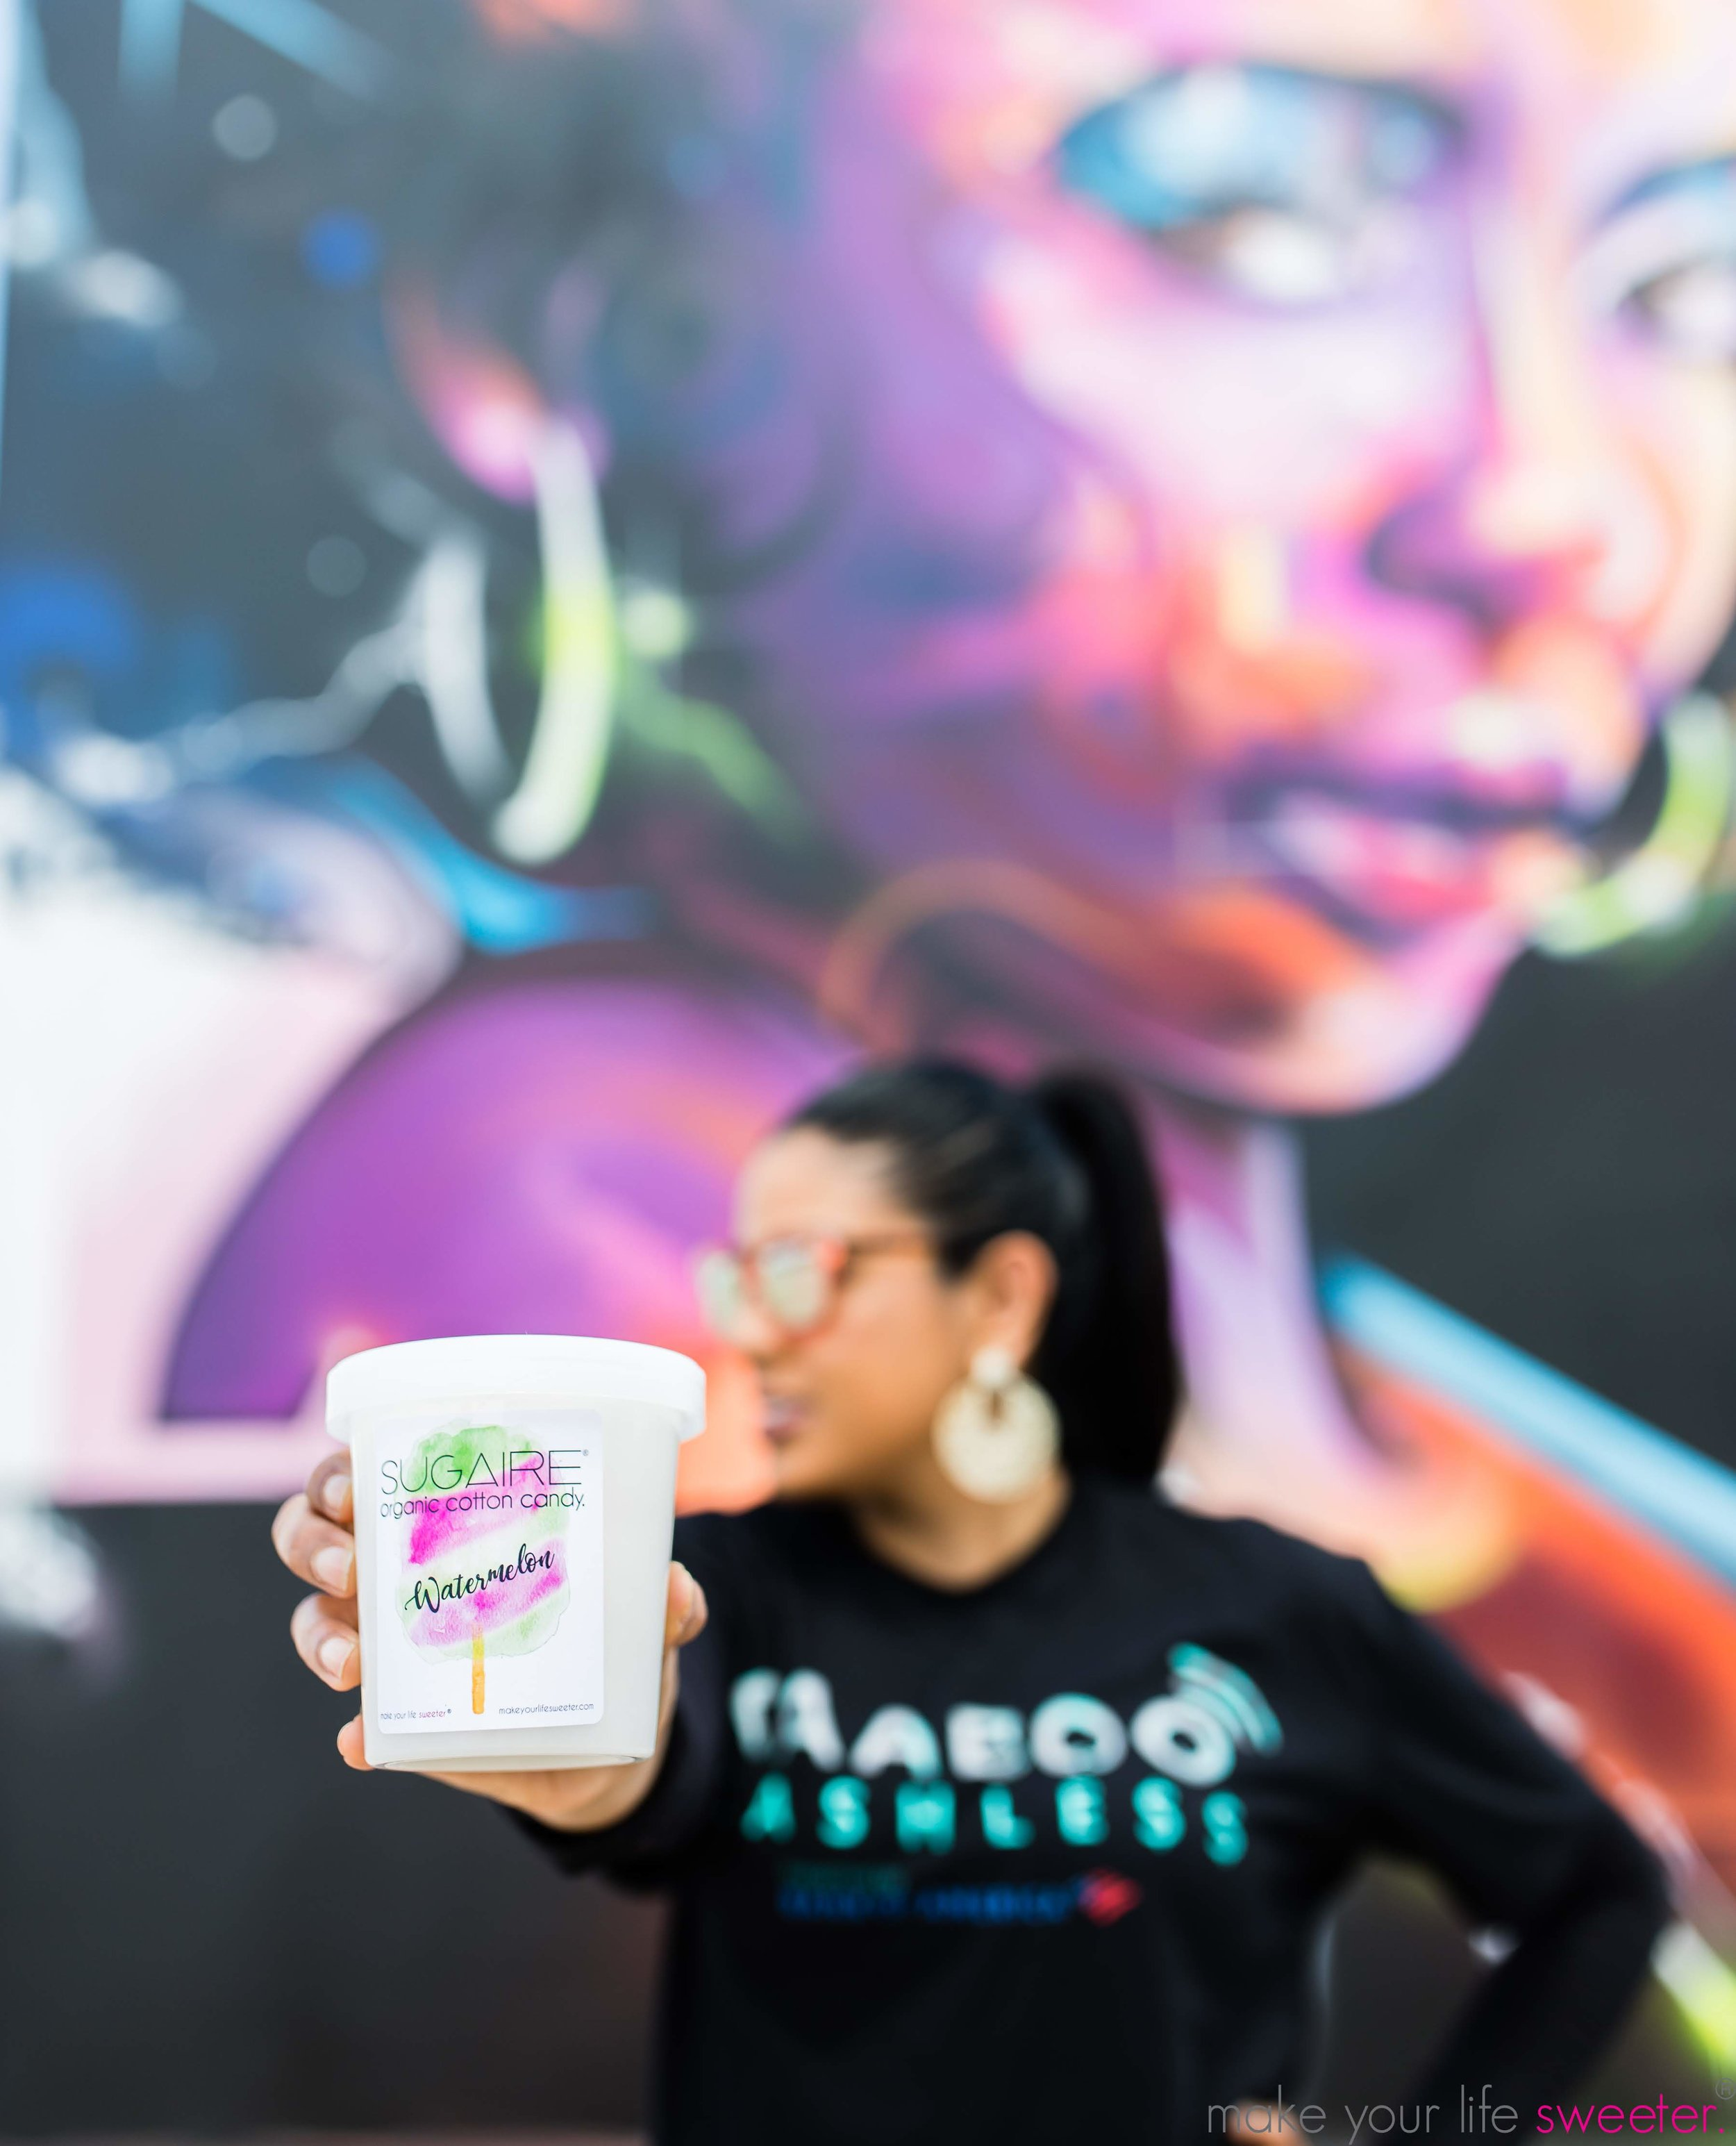 Make Your Life Sweeter Events - Kaaboo Texas - Sugaire Organic Cotton Candy